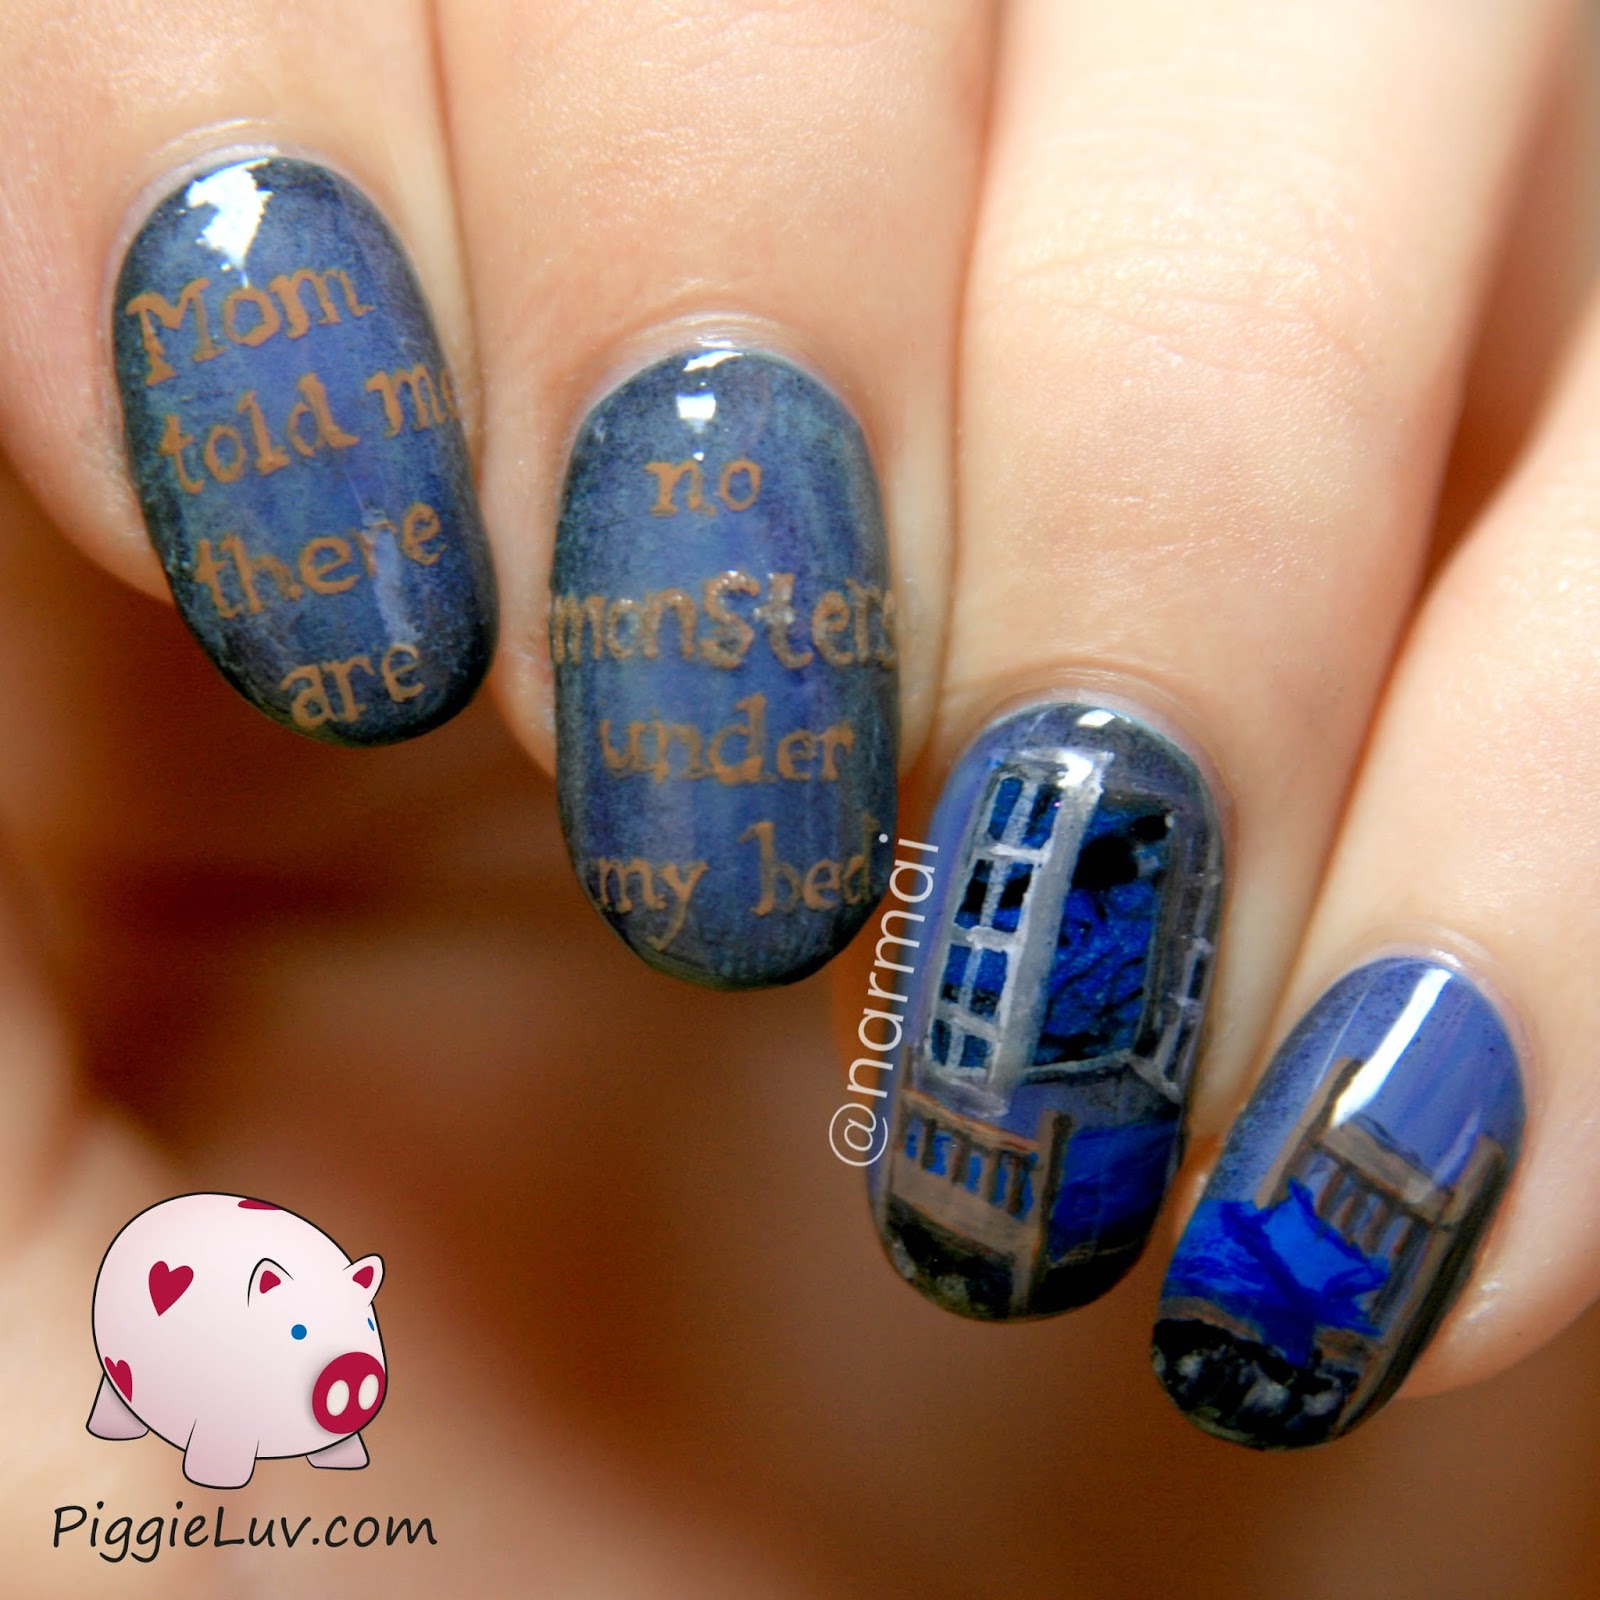 PiggieLuv: Monsters under the bed, glow in the dark nail art!